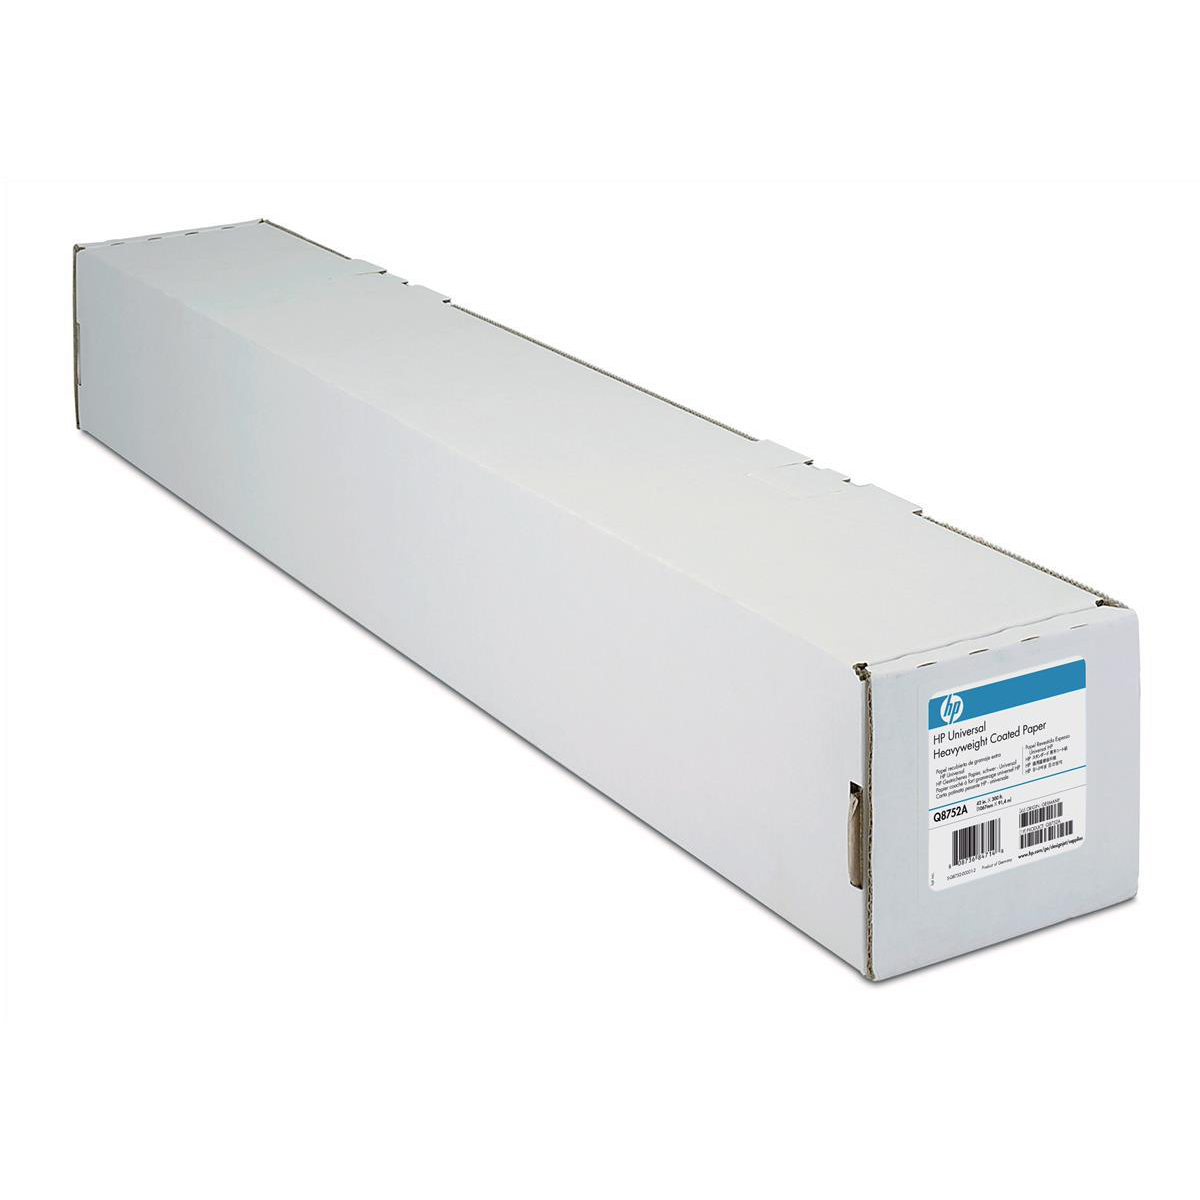 Other Sizes Hewlett Packard HP DesignJet Coated Paper 90gsm 36 inch Roll 914mmx45.7m Ref C6020B